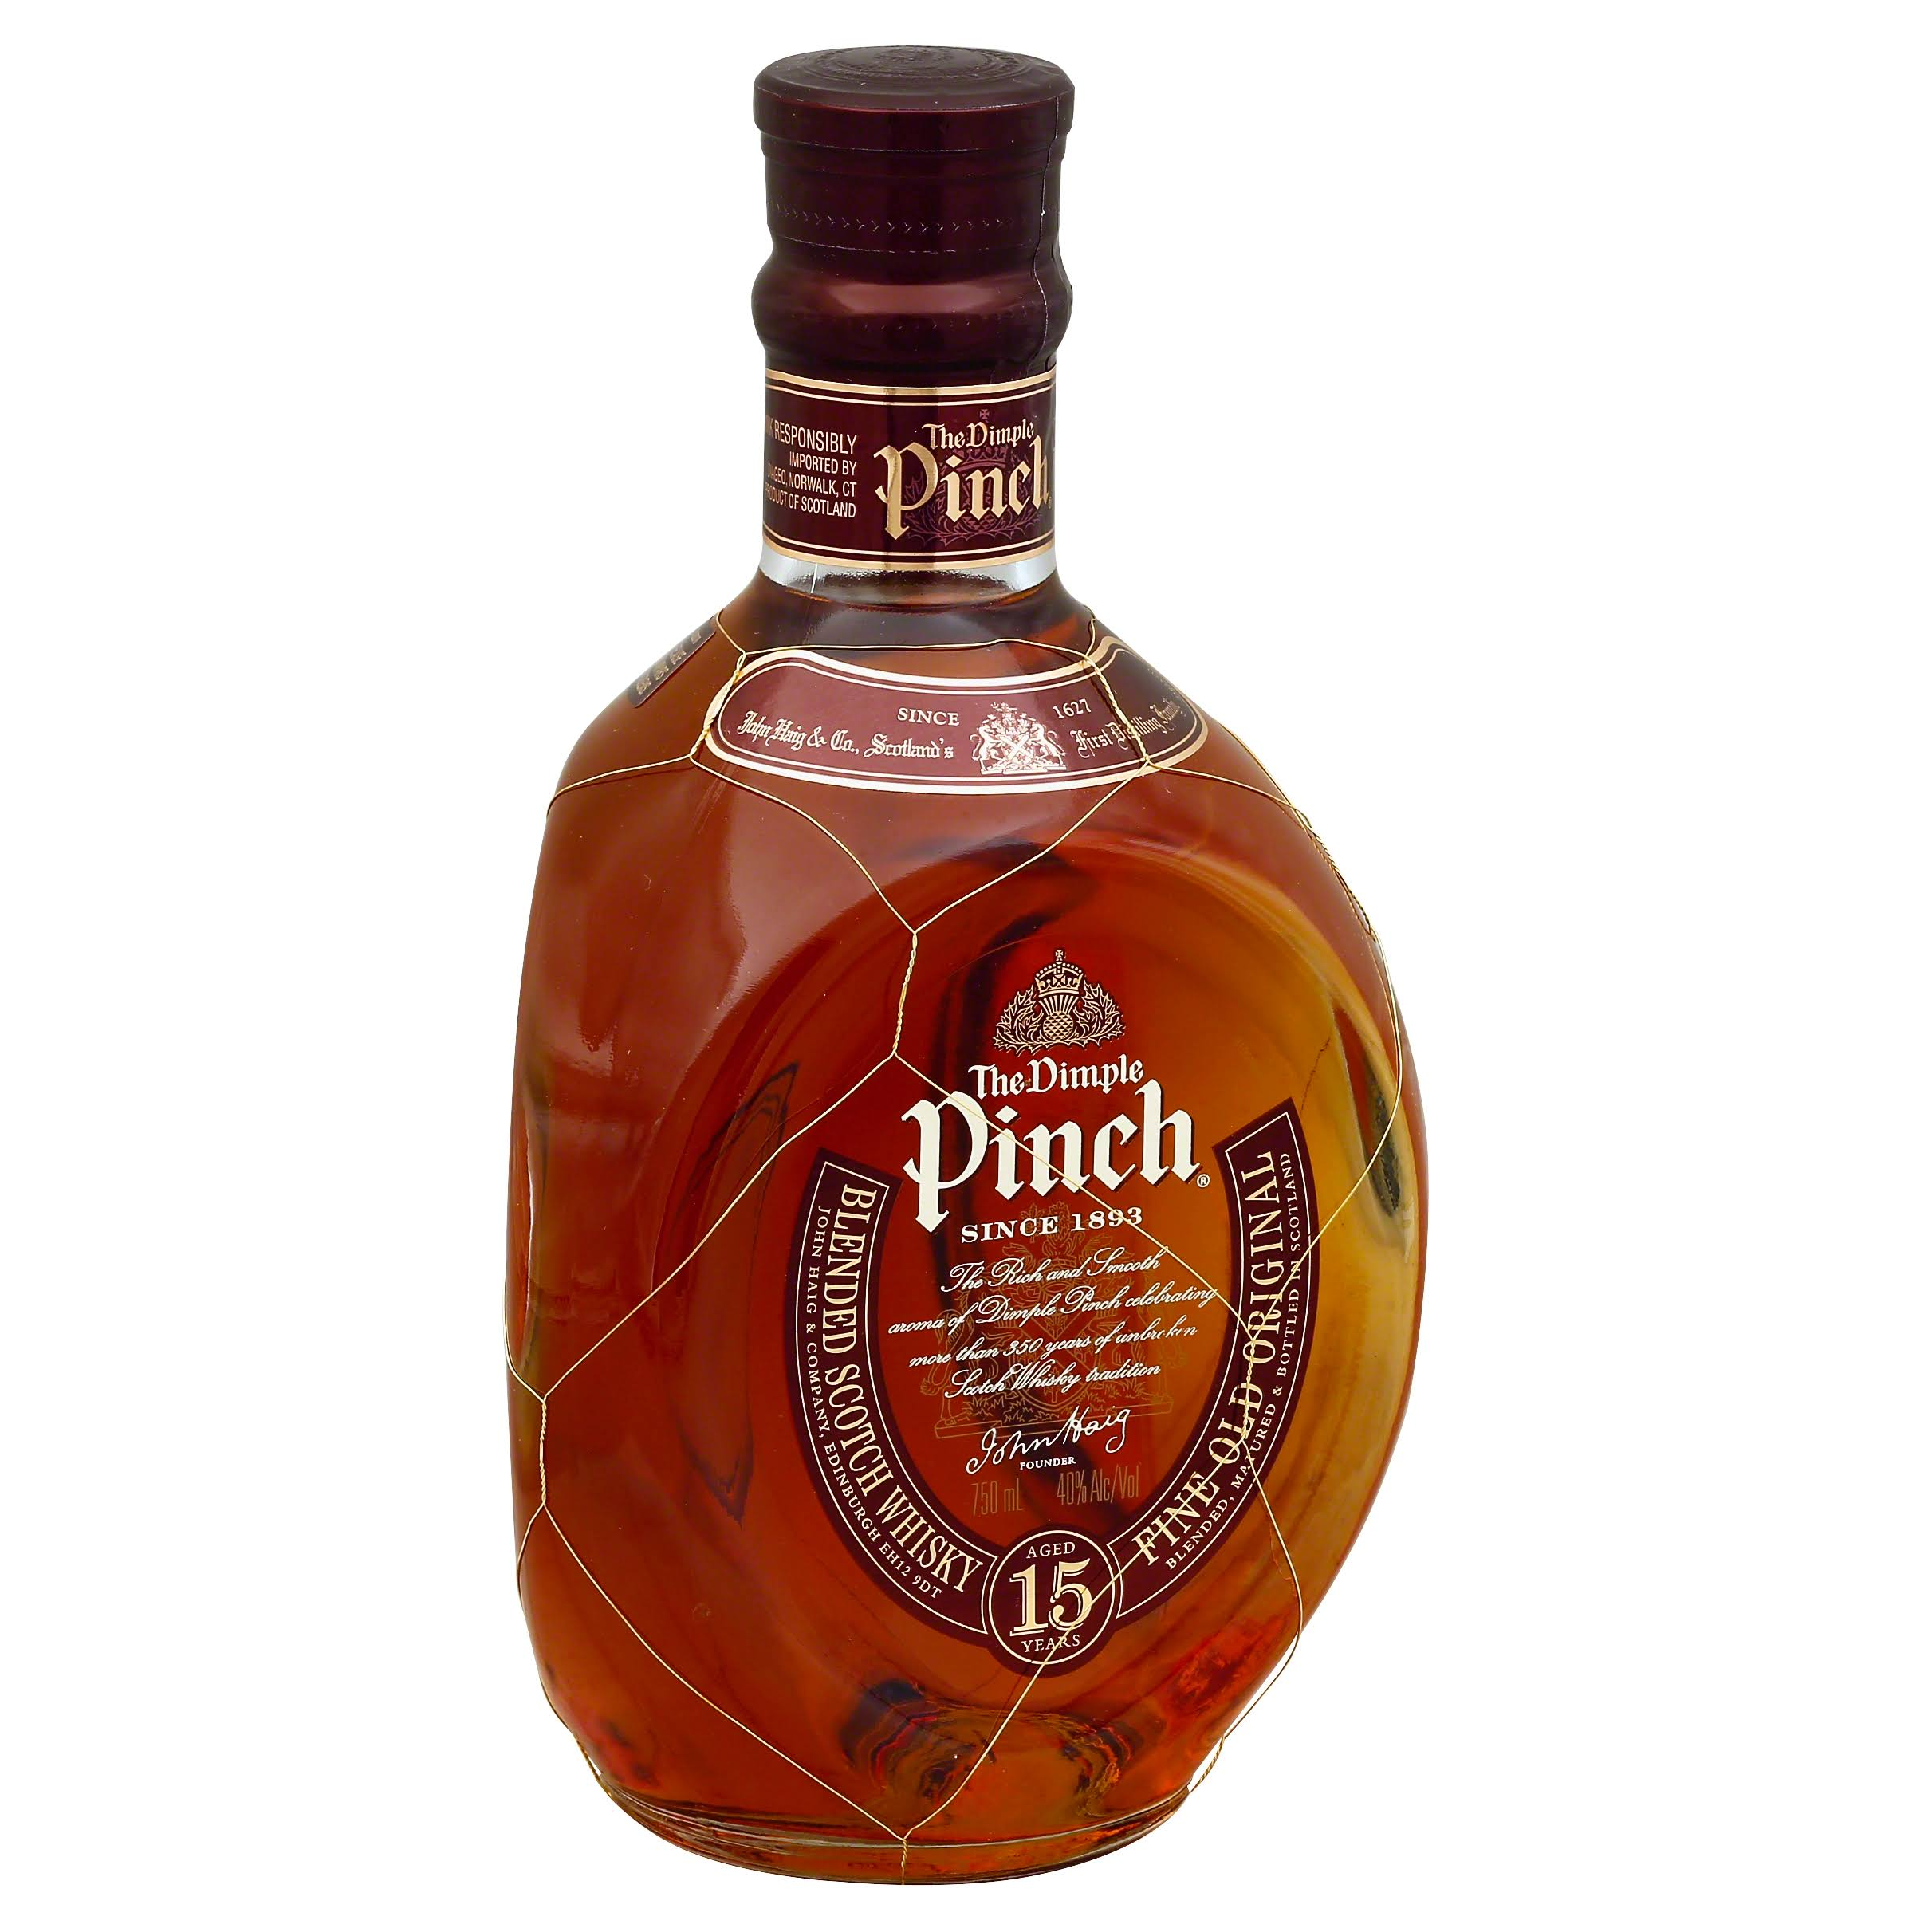 Dimple Pinch Scotch Whiskey - 750ml